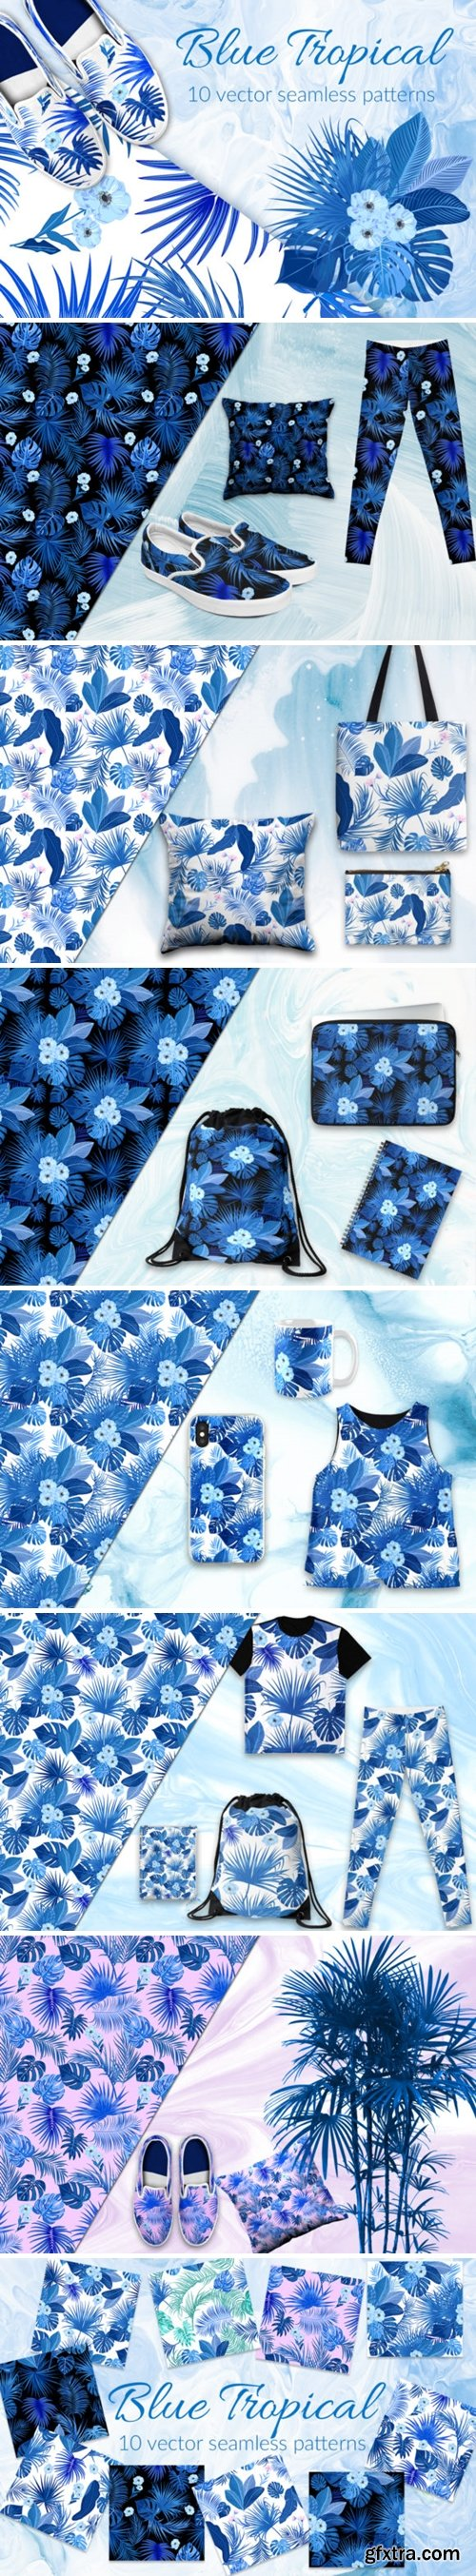 Blue Tropical Vector Seamless Pattern 1516163